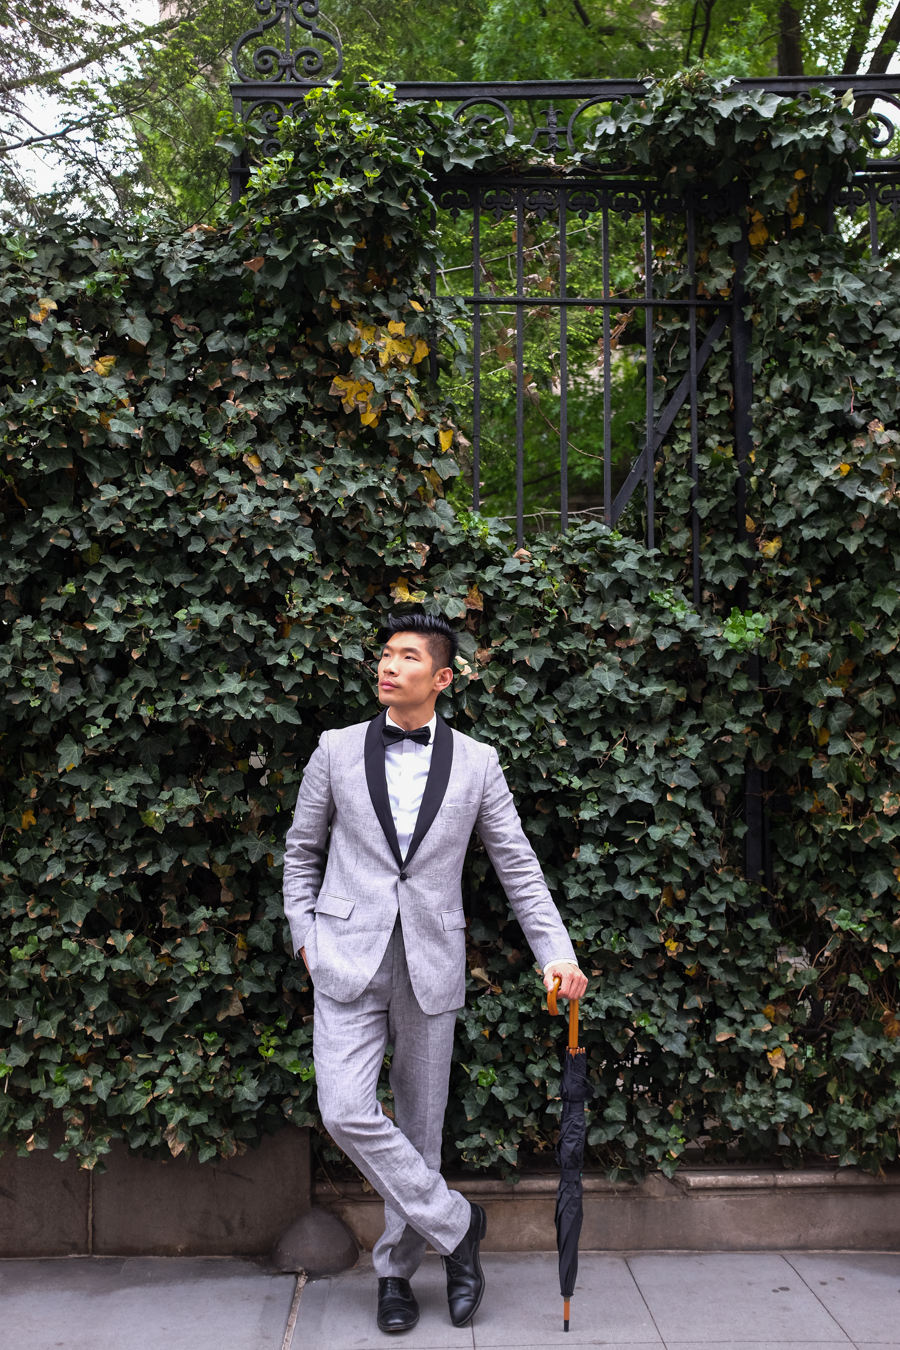 Levitate Style | Linen Tux feat Menswear Summer Style with Bonobos, Allen Edmonds